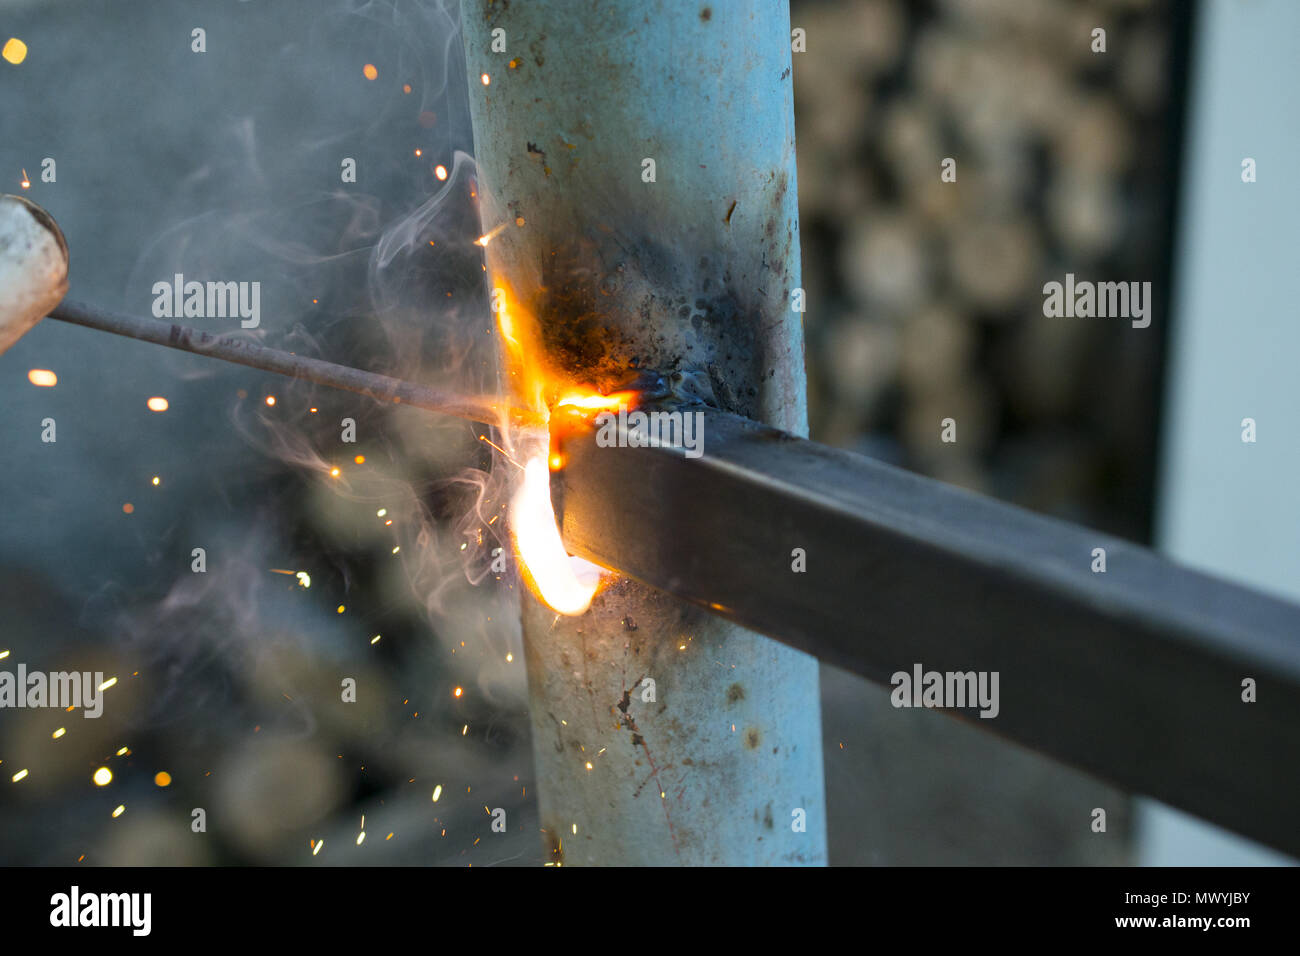 worker welding metal elements on site,image of a - Stock Image